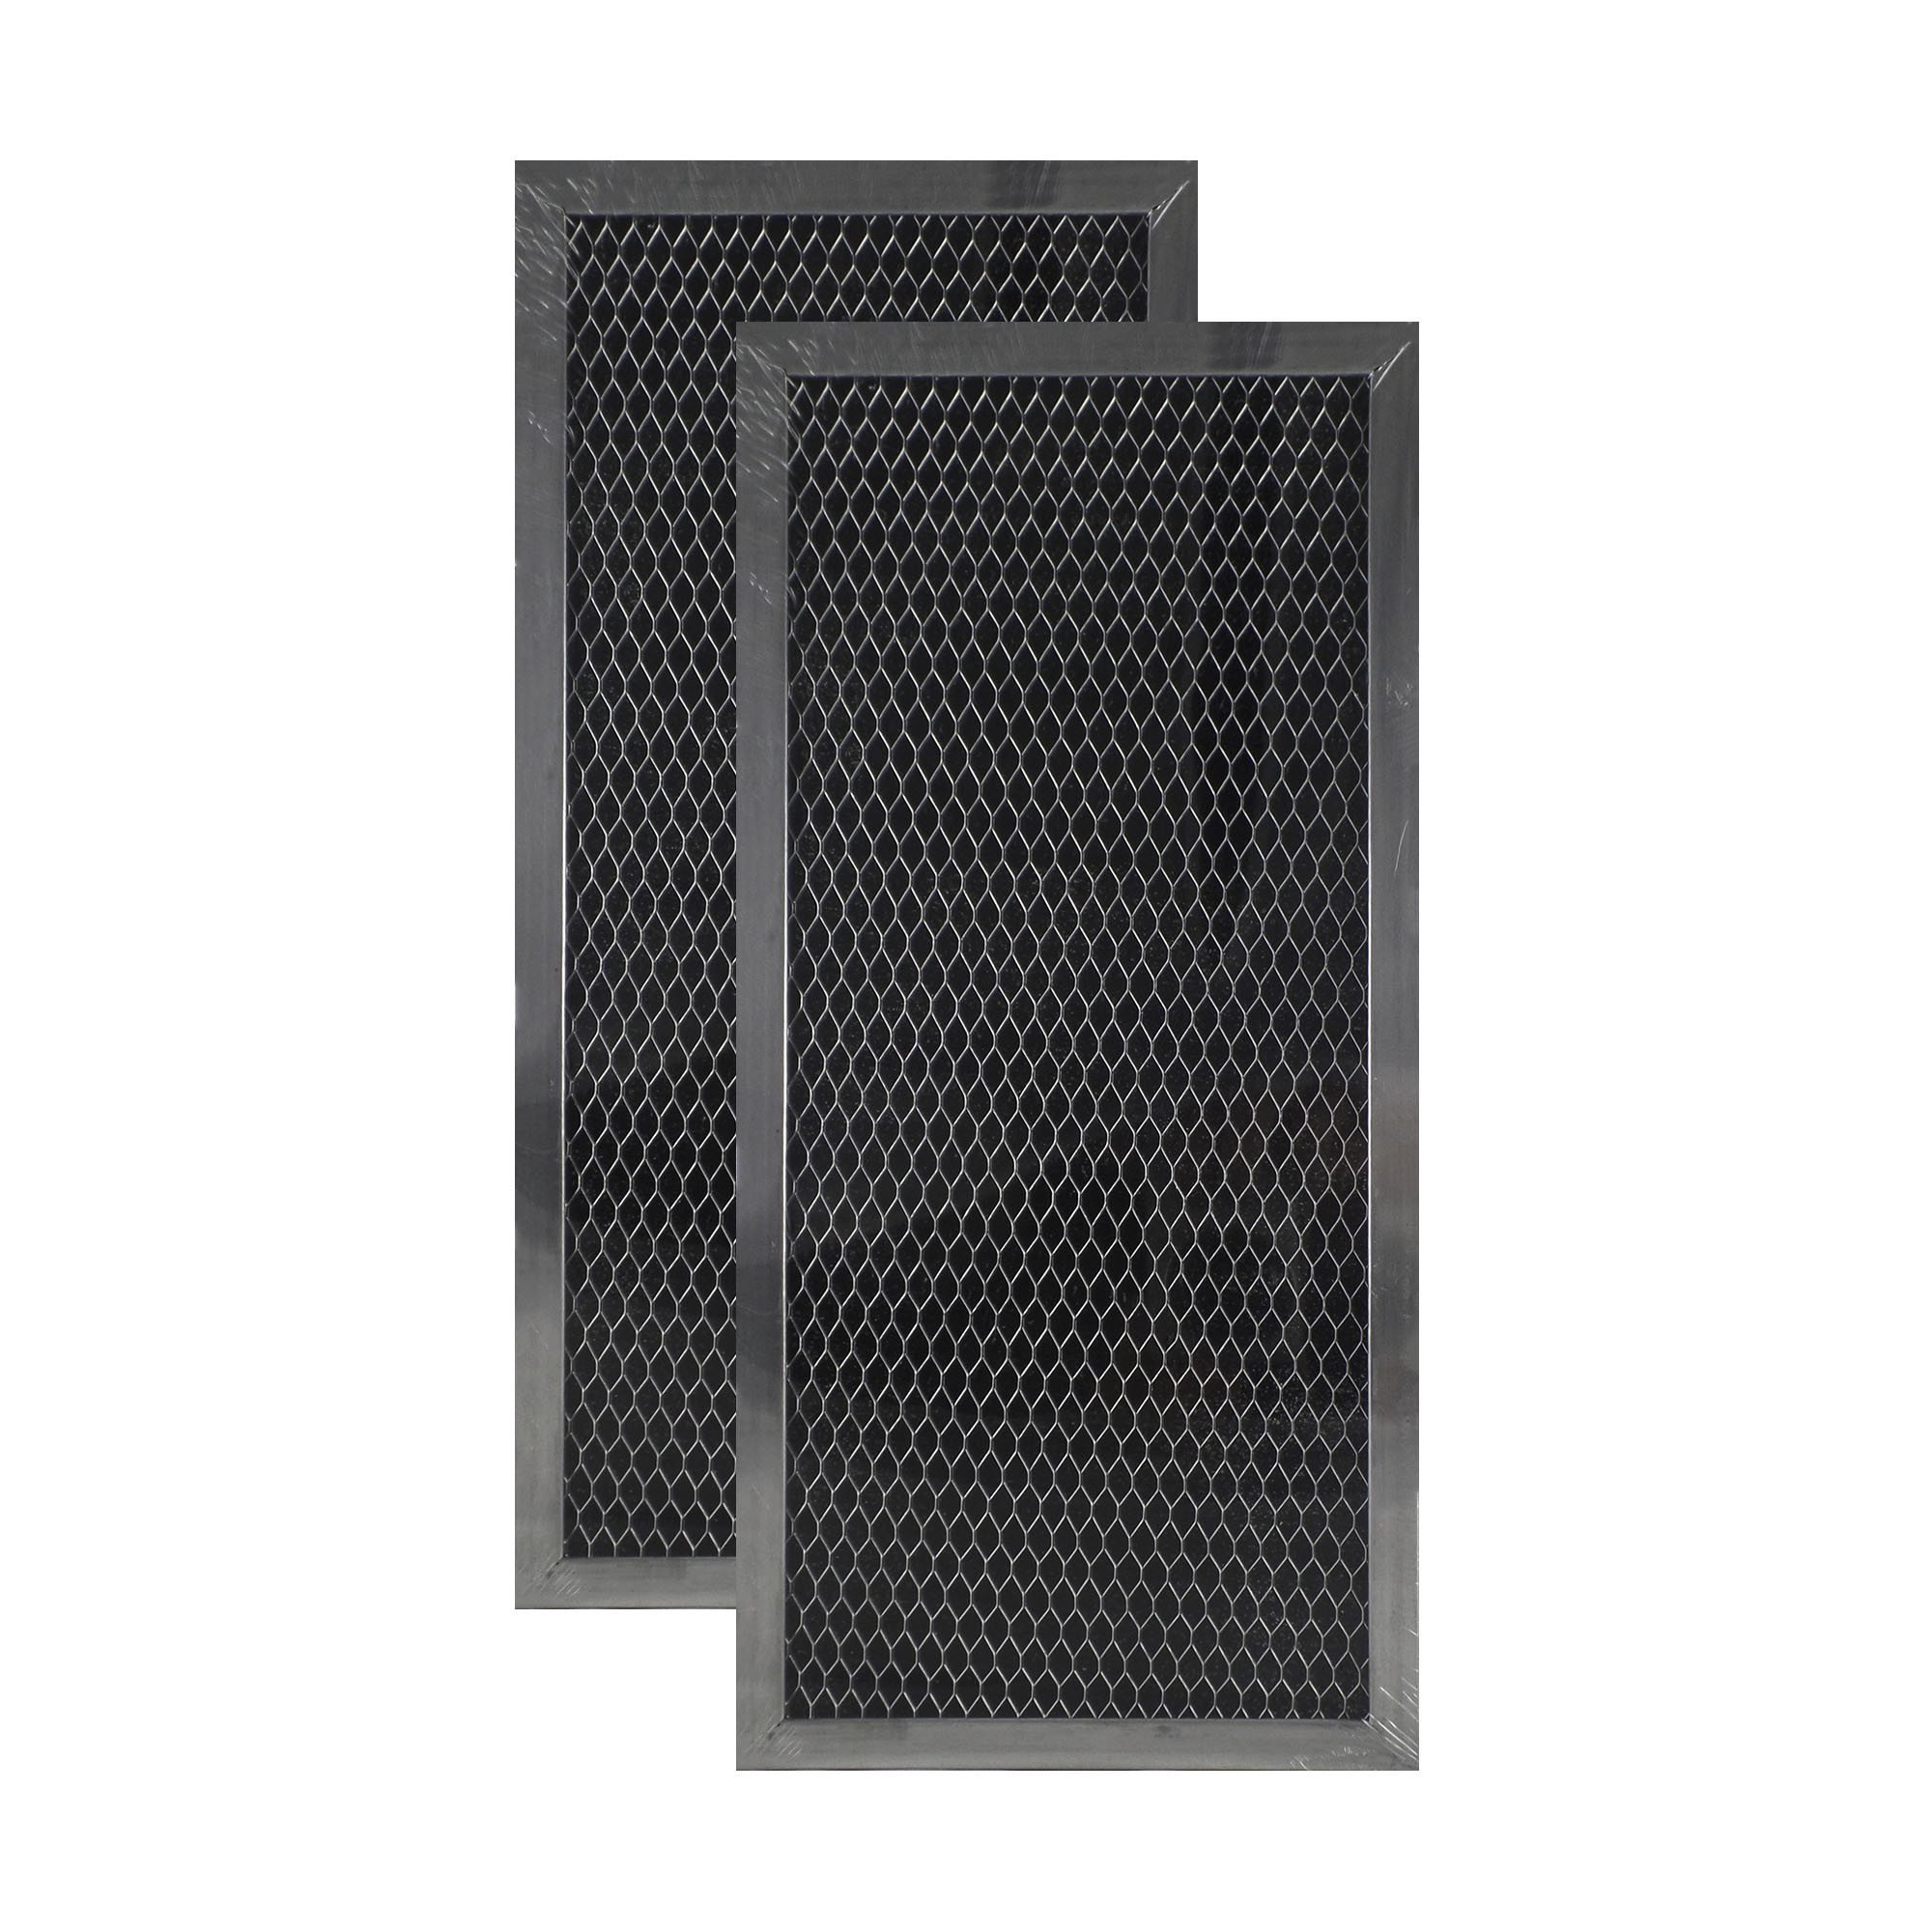 2 PACK AF Compatible Replacement For Whirlpool 901003 Microwave Hood Charcoal Filter Set